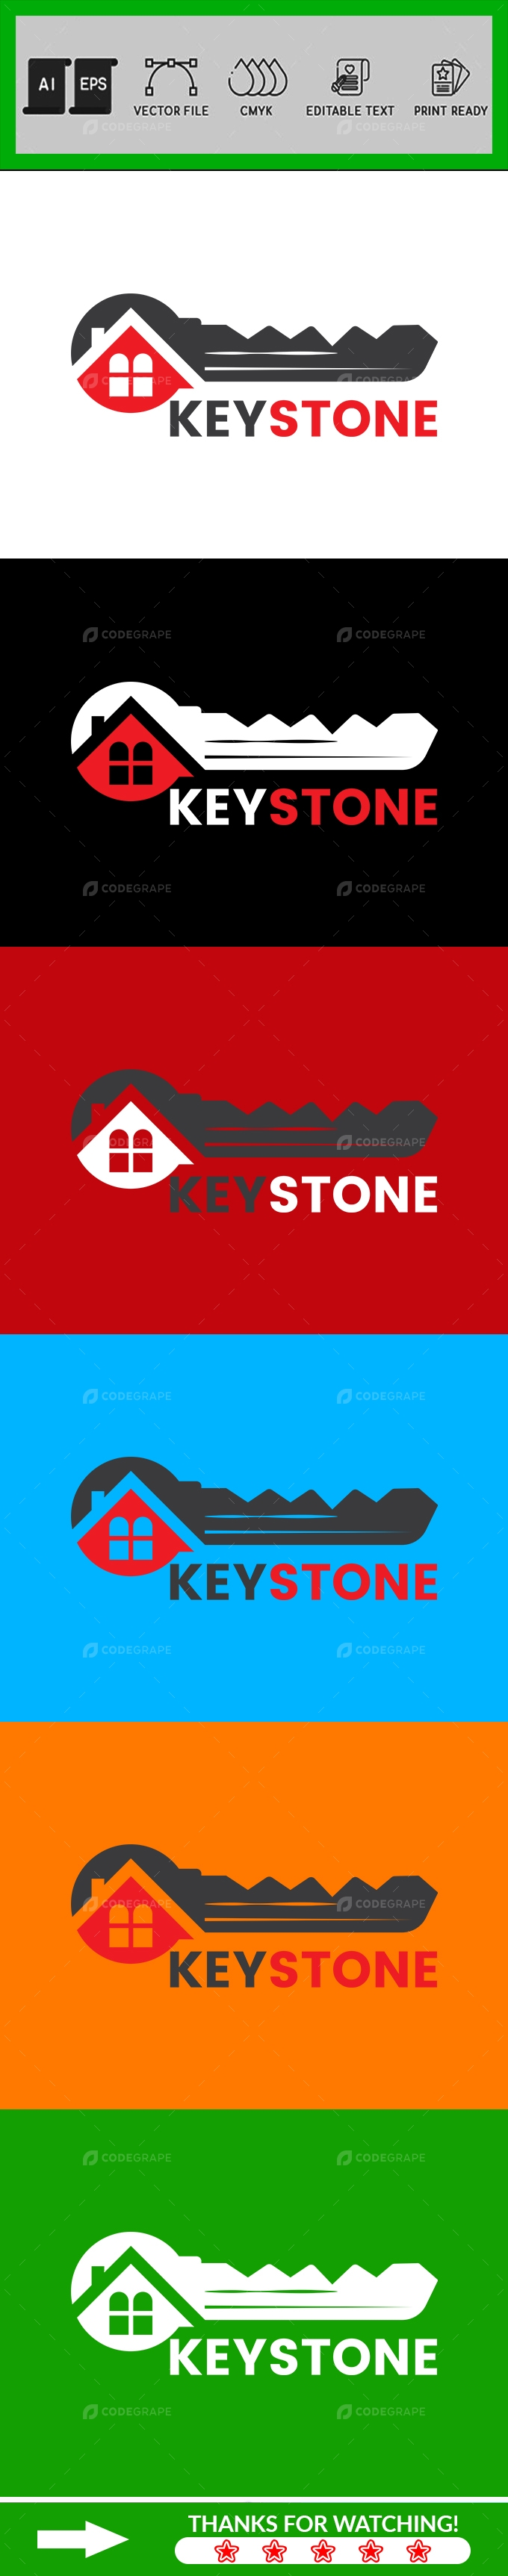 Keystone Logo Design Template